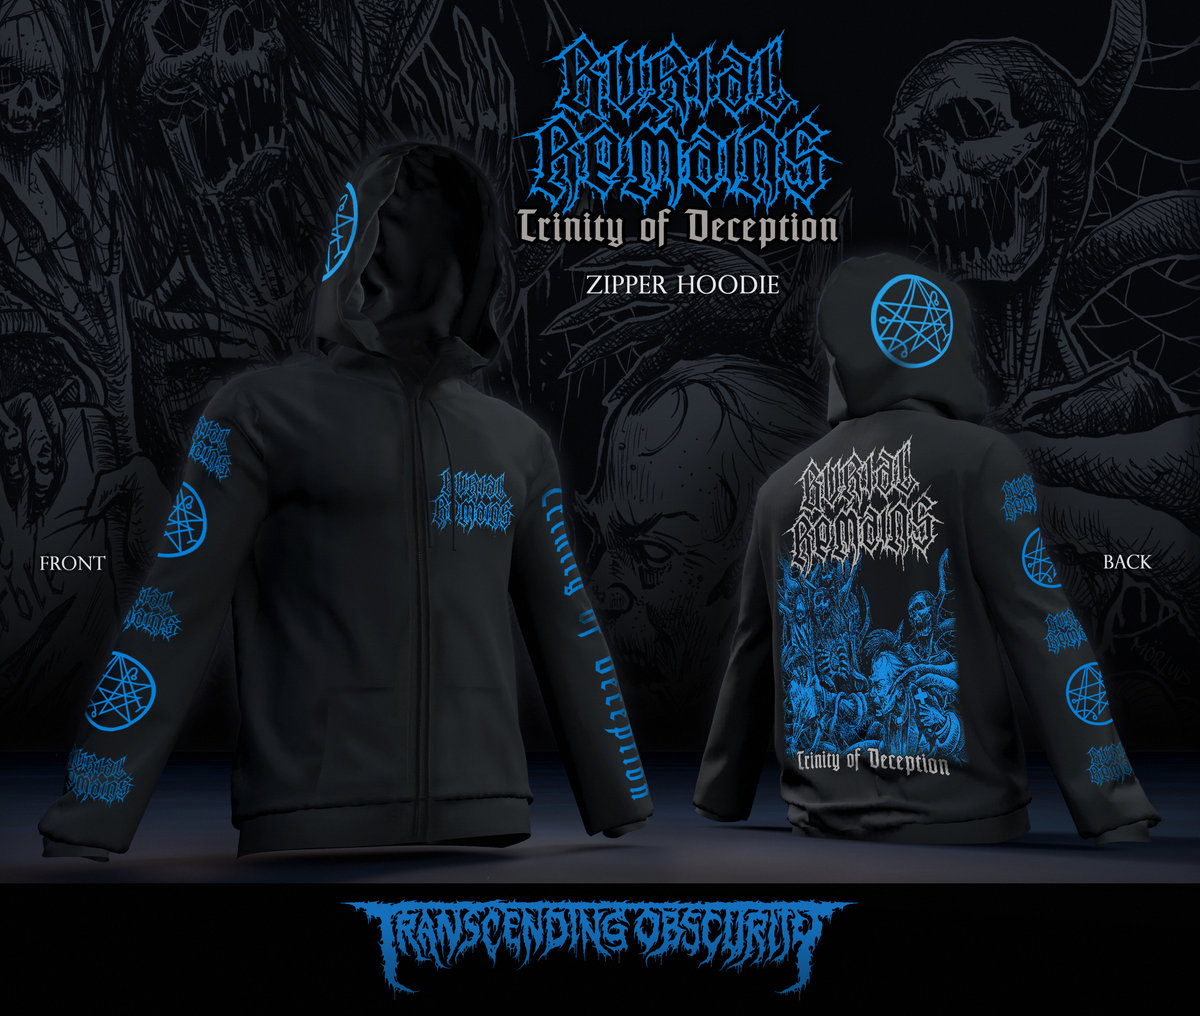 BURIAL REMAINS Zipped Hoodie (Limited to 30 nos.)